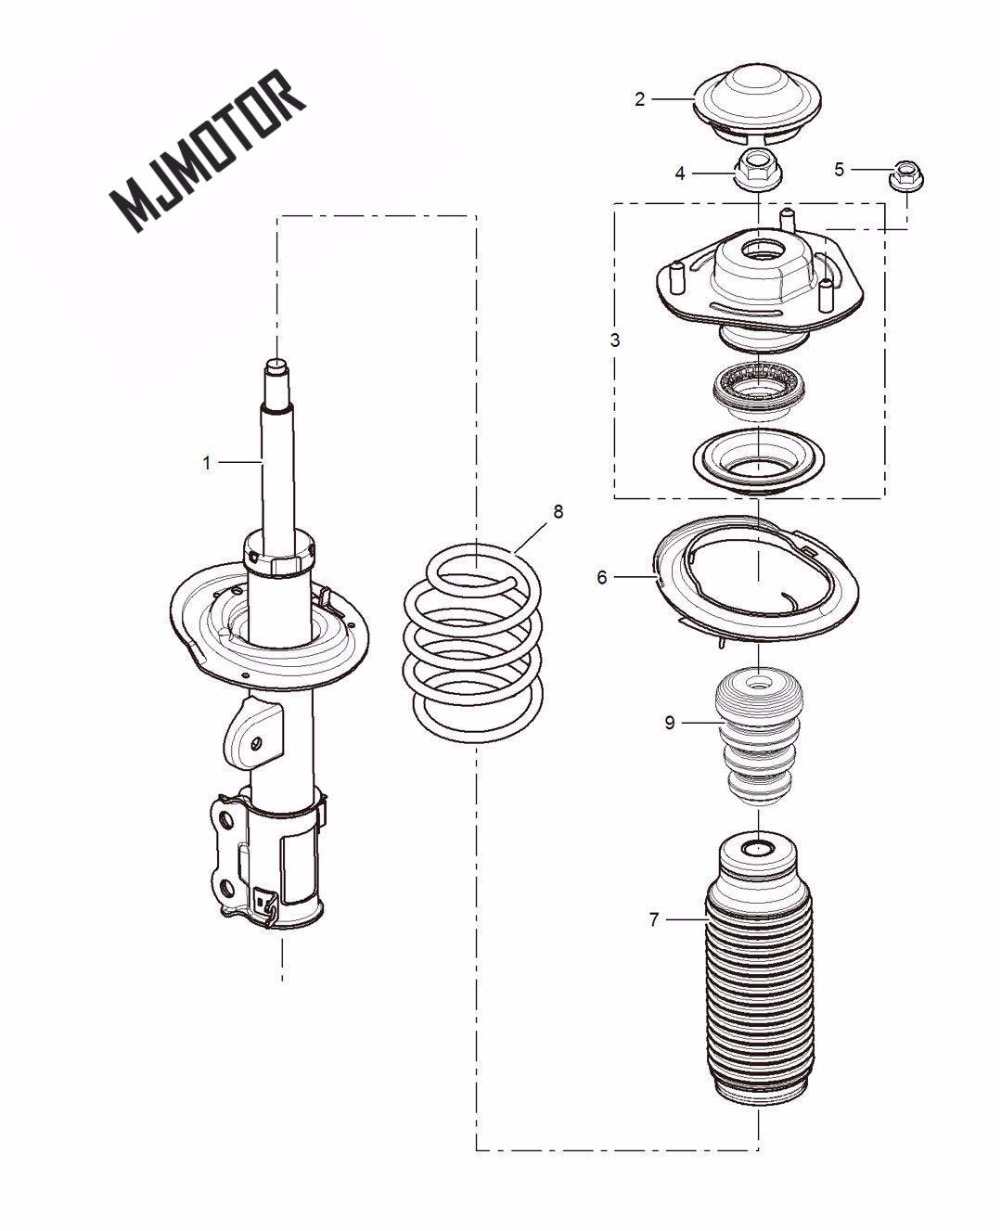 Shock absorber Front assy with dust cover and spring for SAIC ROEWE 350 MG3 MG5 Autocar